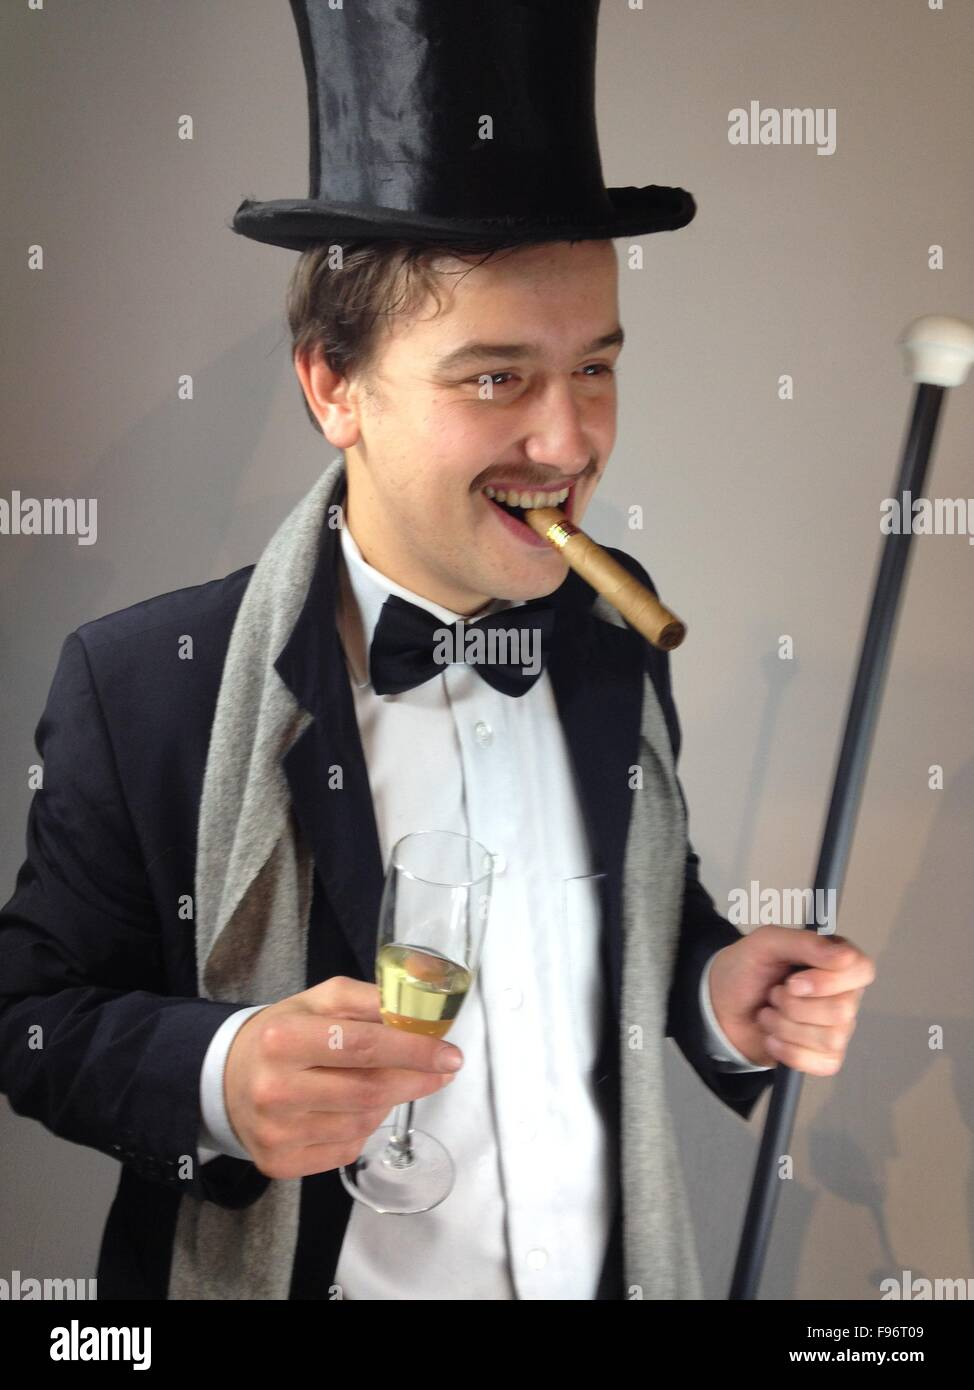 64da4939f6d Man With Top Hat And Cigar Stock Photo  91734281 - Alamy